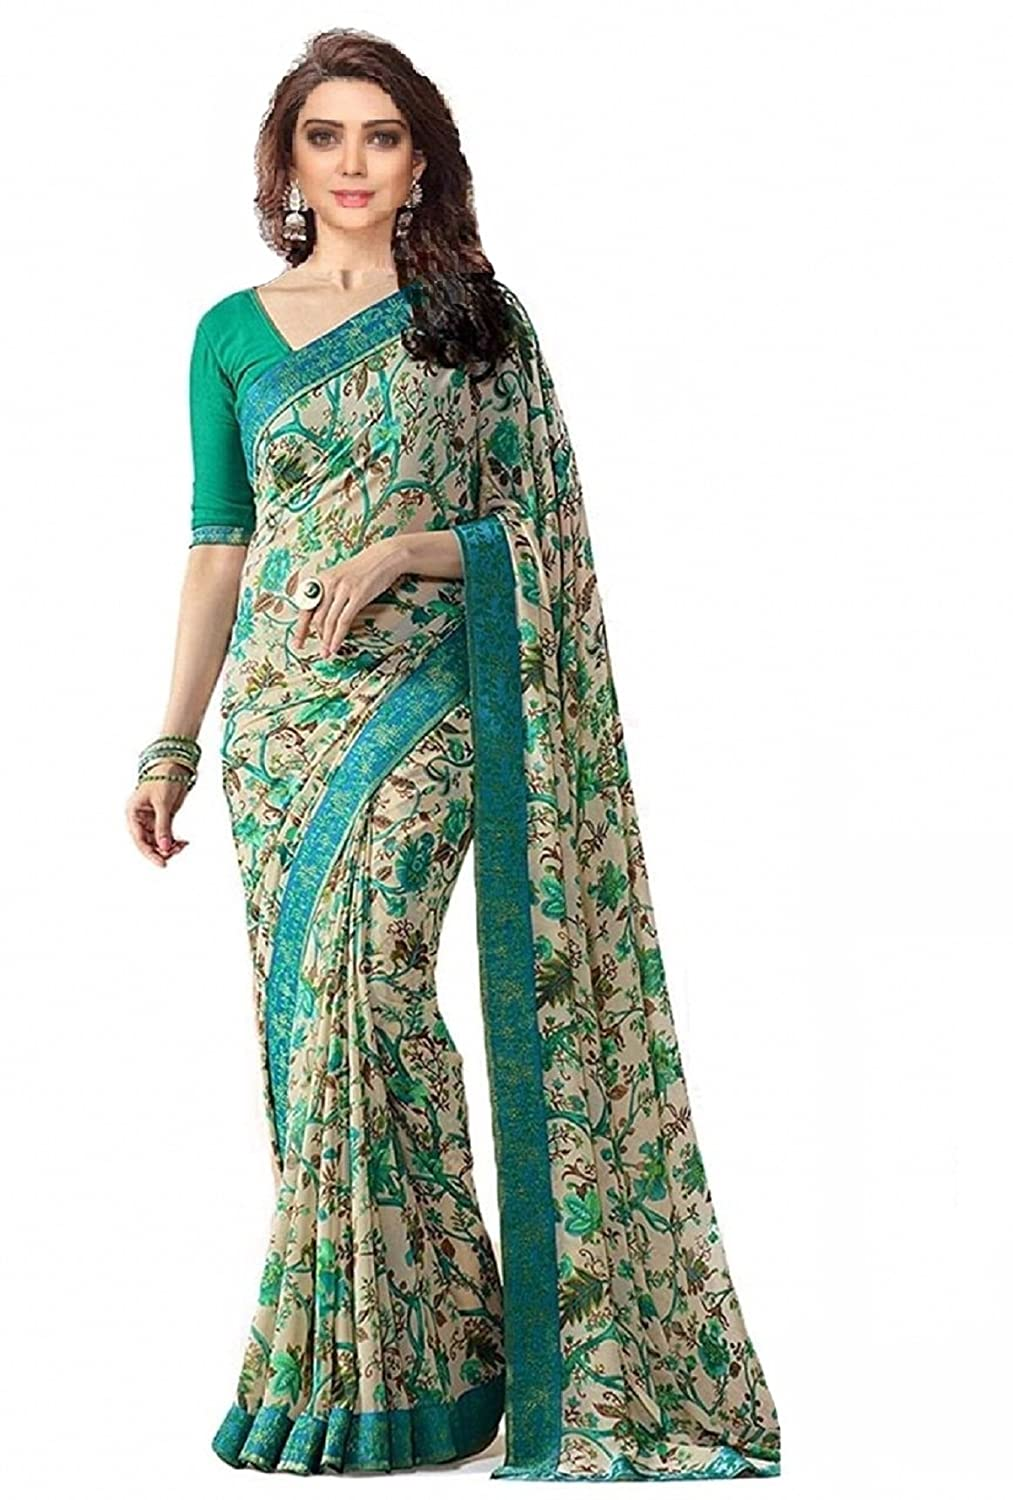 Hinayat Fashion Chiffon Saree (Nht01Sri531_Green_Free Size)